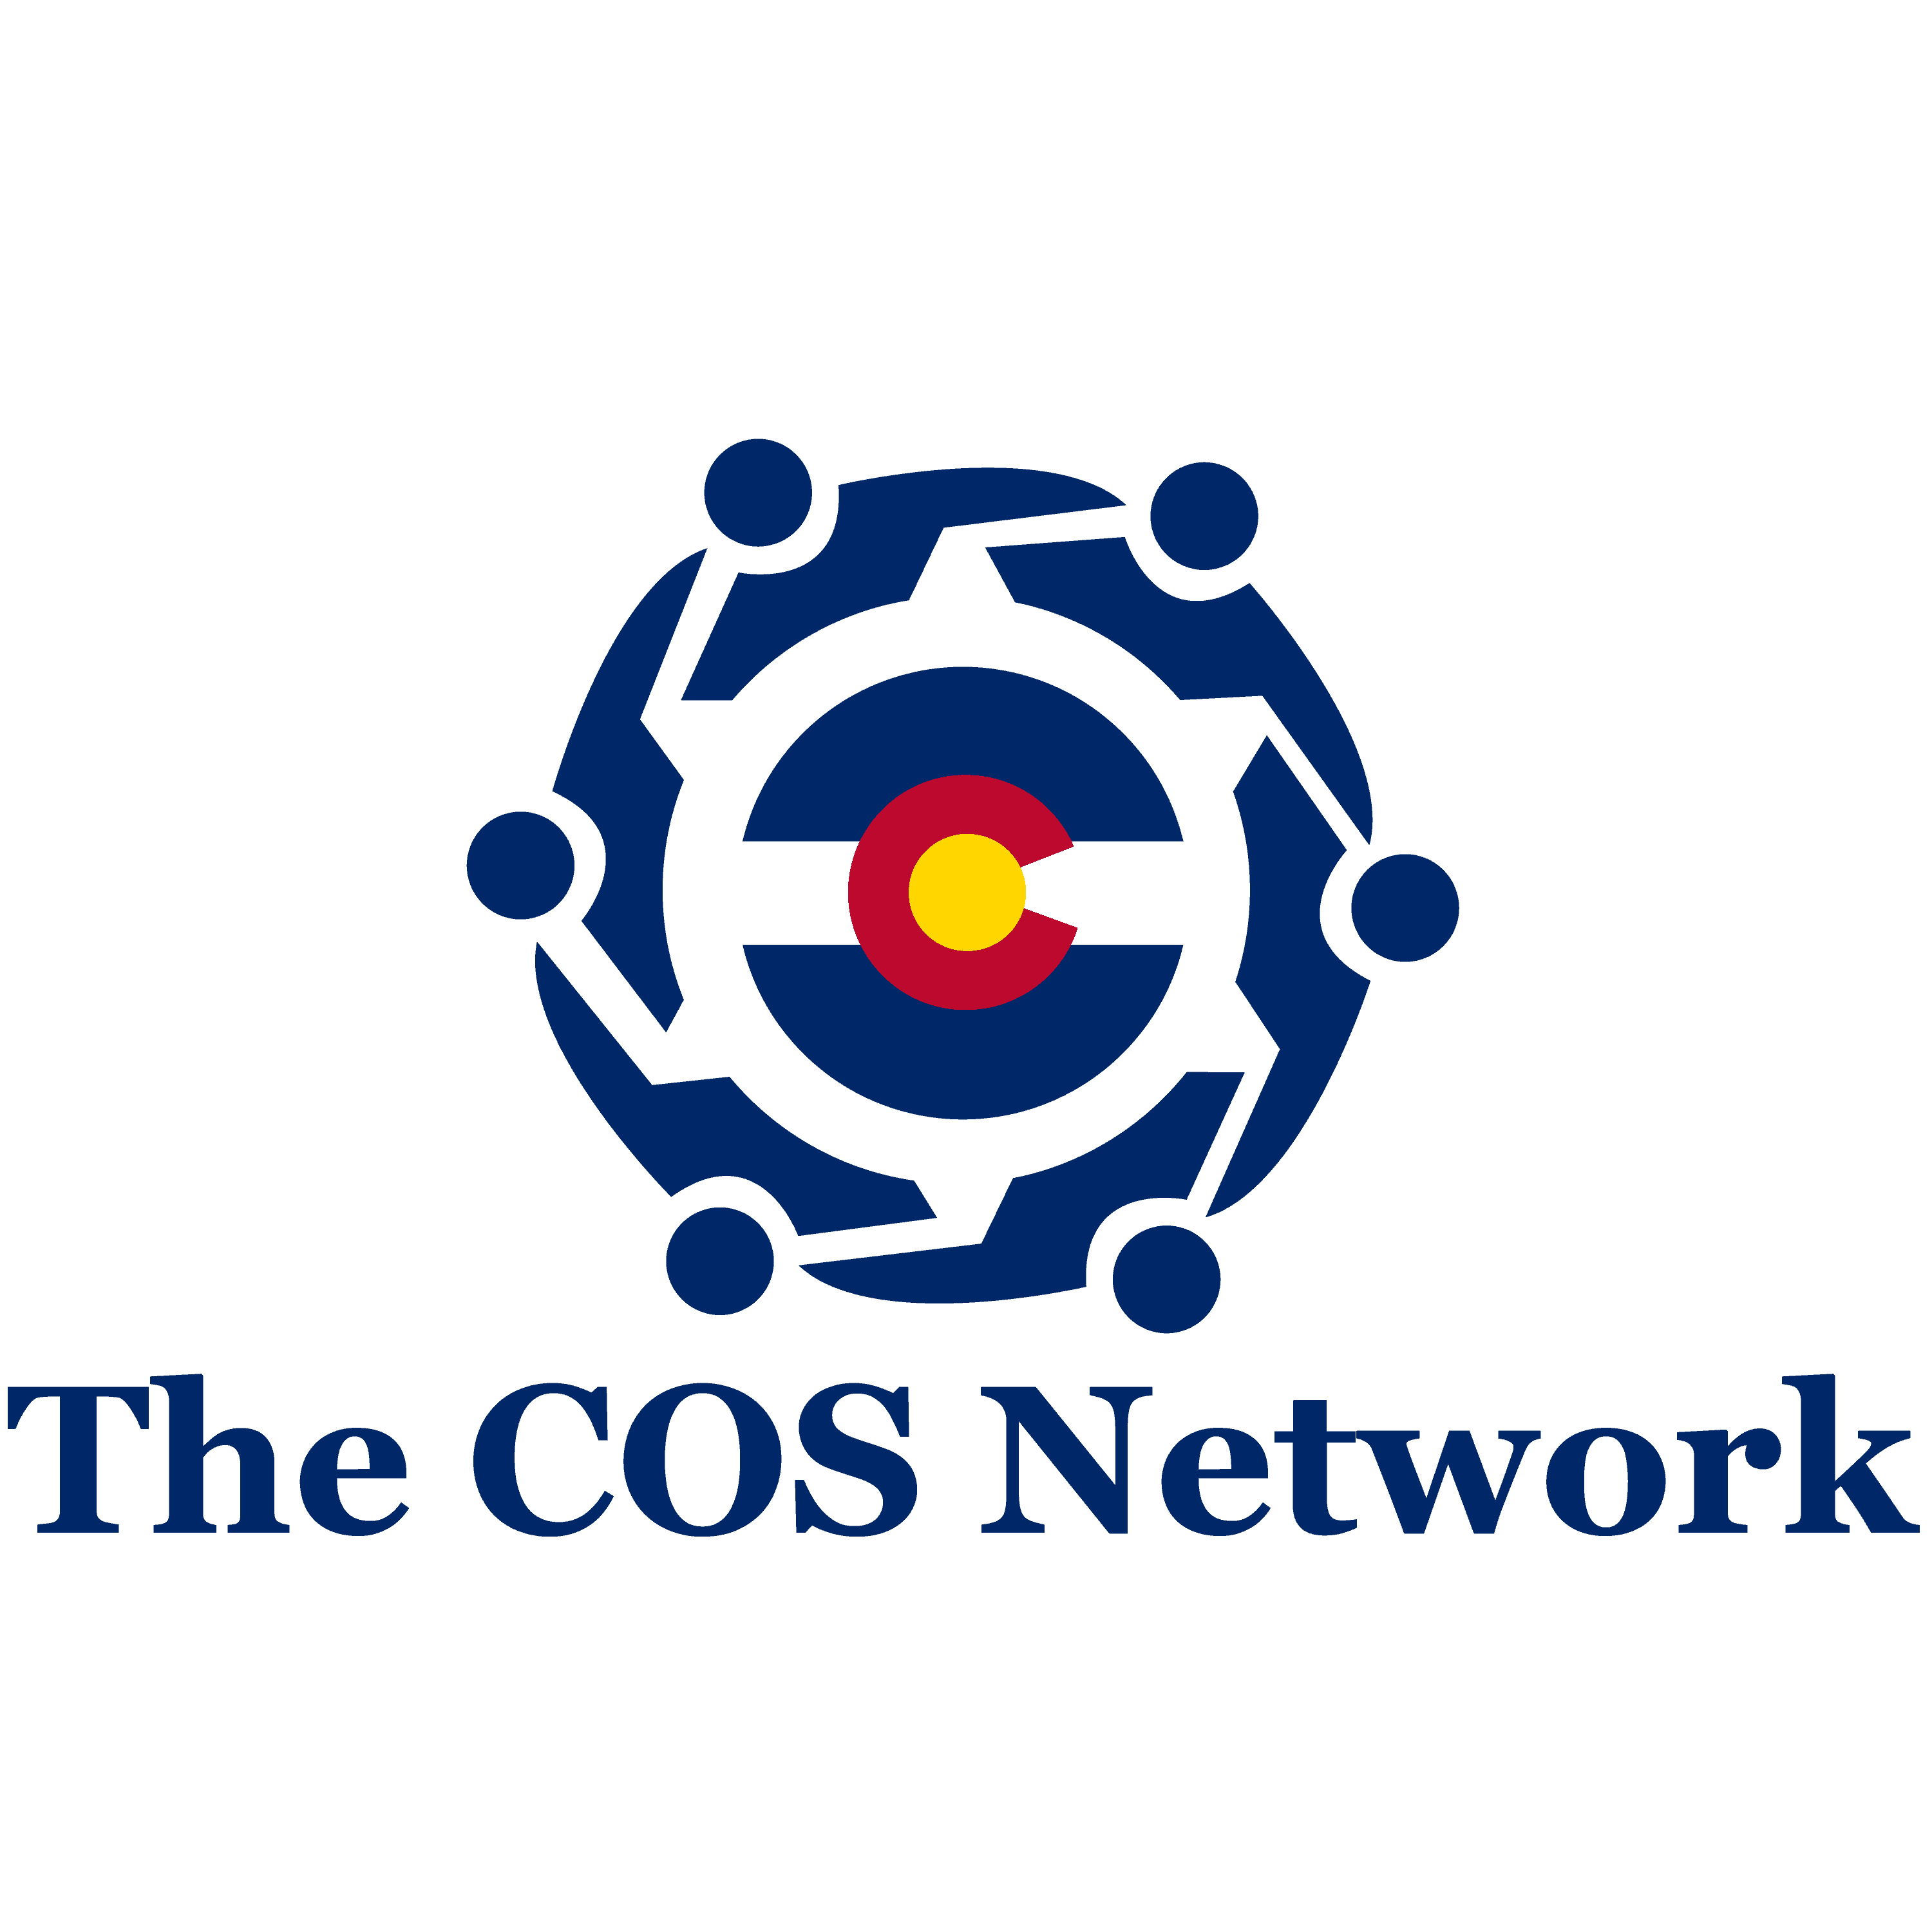 The COS Network - Helping Local, Colorado Springs Charities